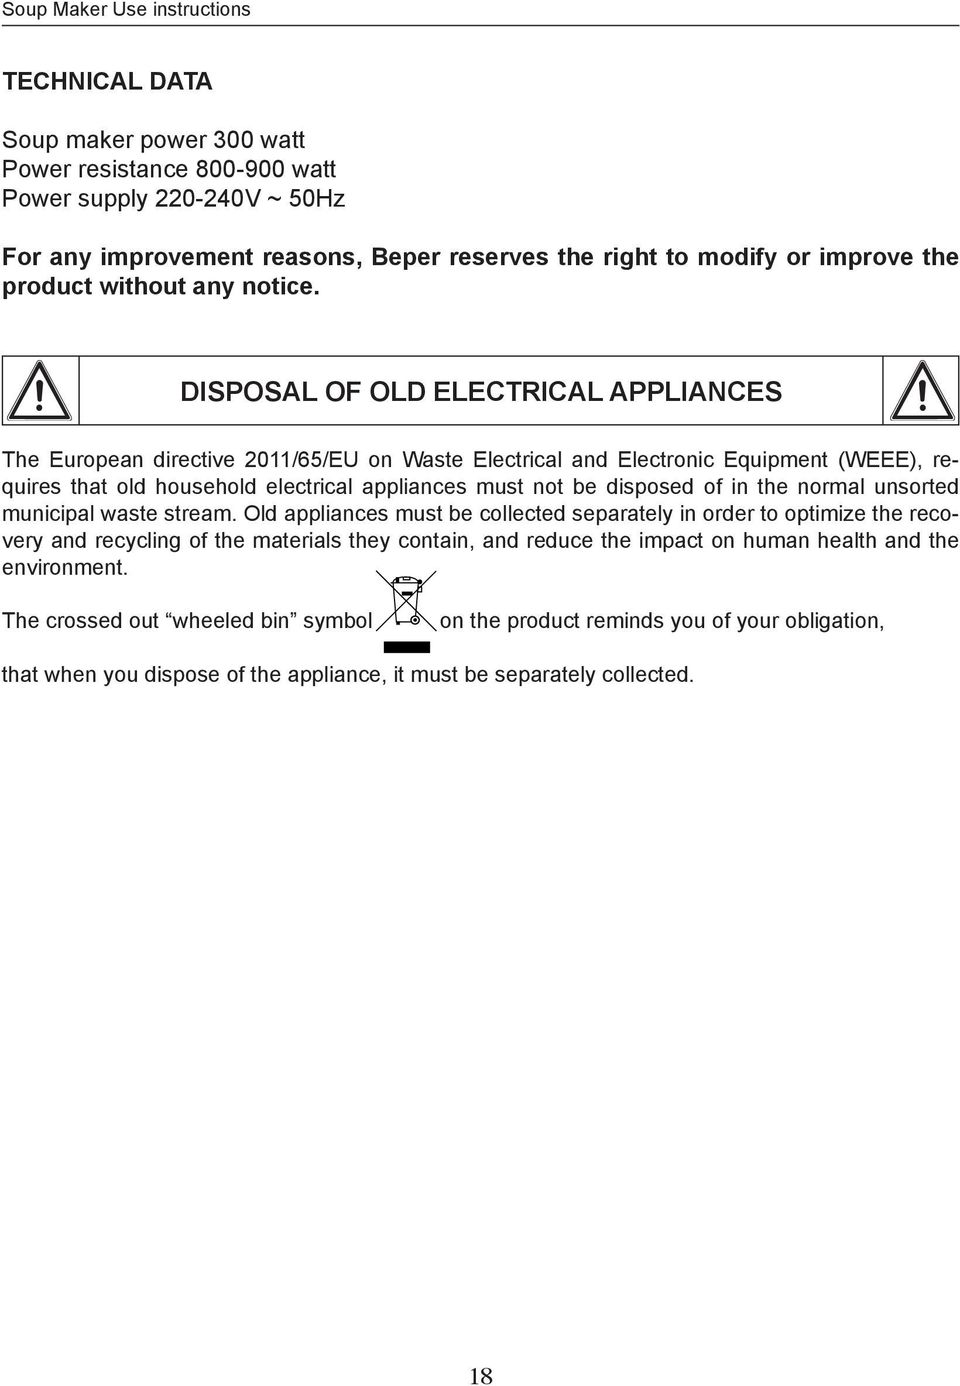 DISPOSAL OF OLD ELECTRICAL APPLIANCES The European directive 2011/65/EU on Waste Electrical and Electronic Equipment (WEEE), requires that old household electrical appliances must not be disposed of